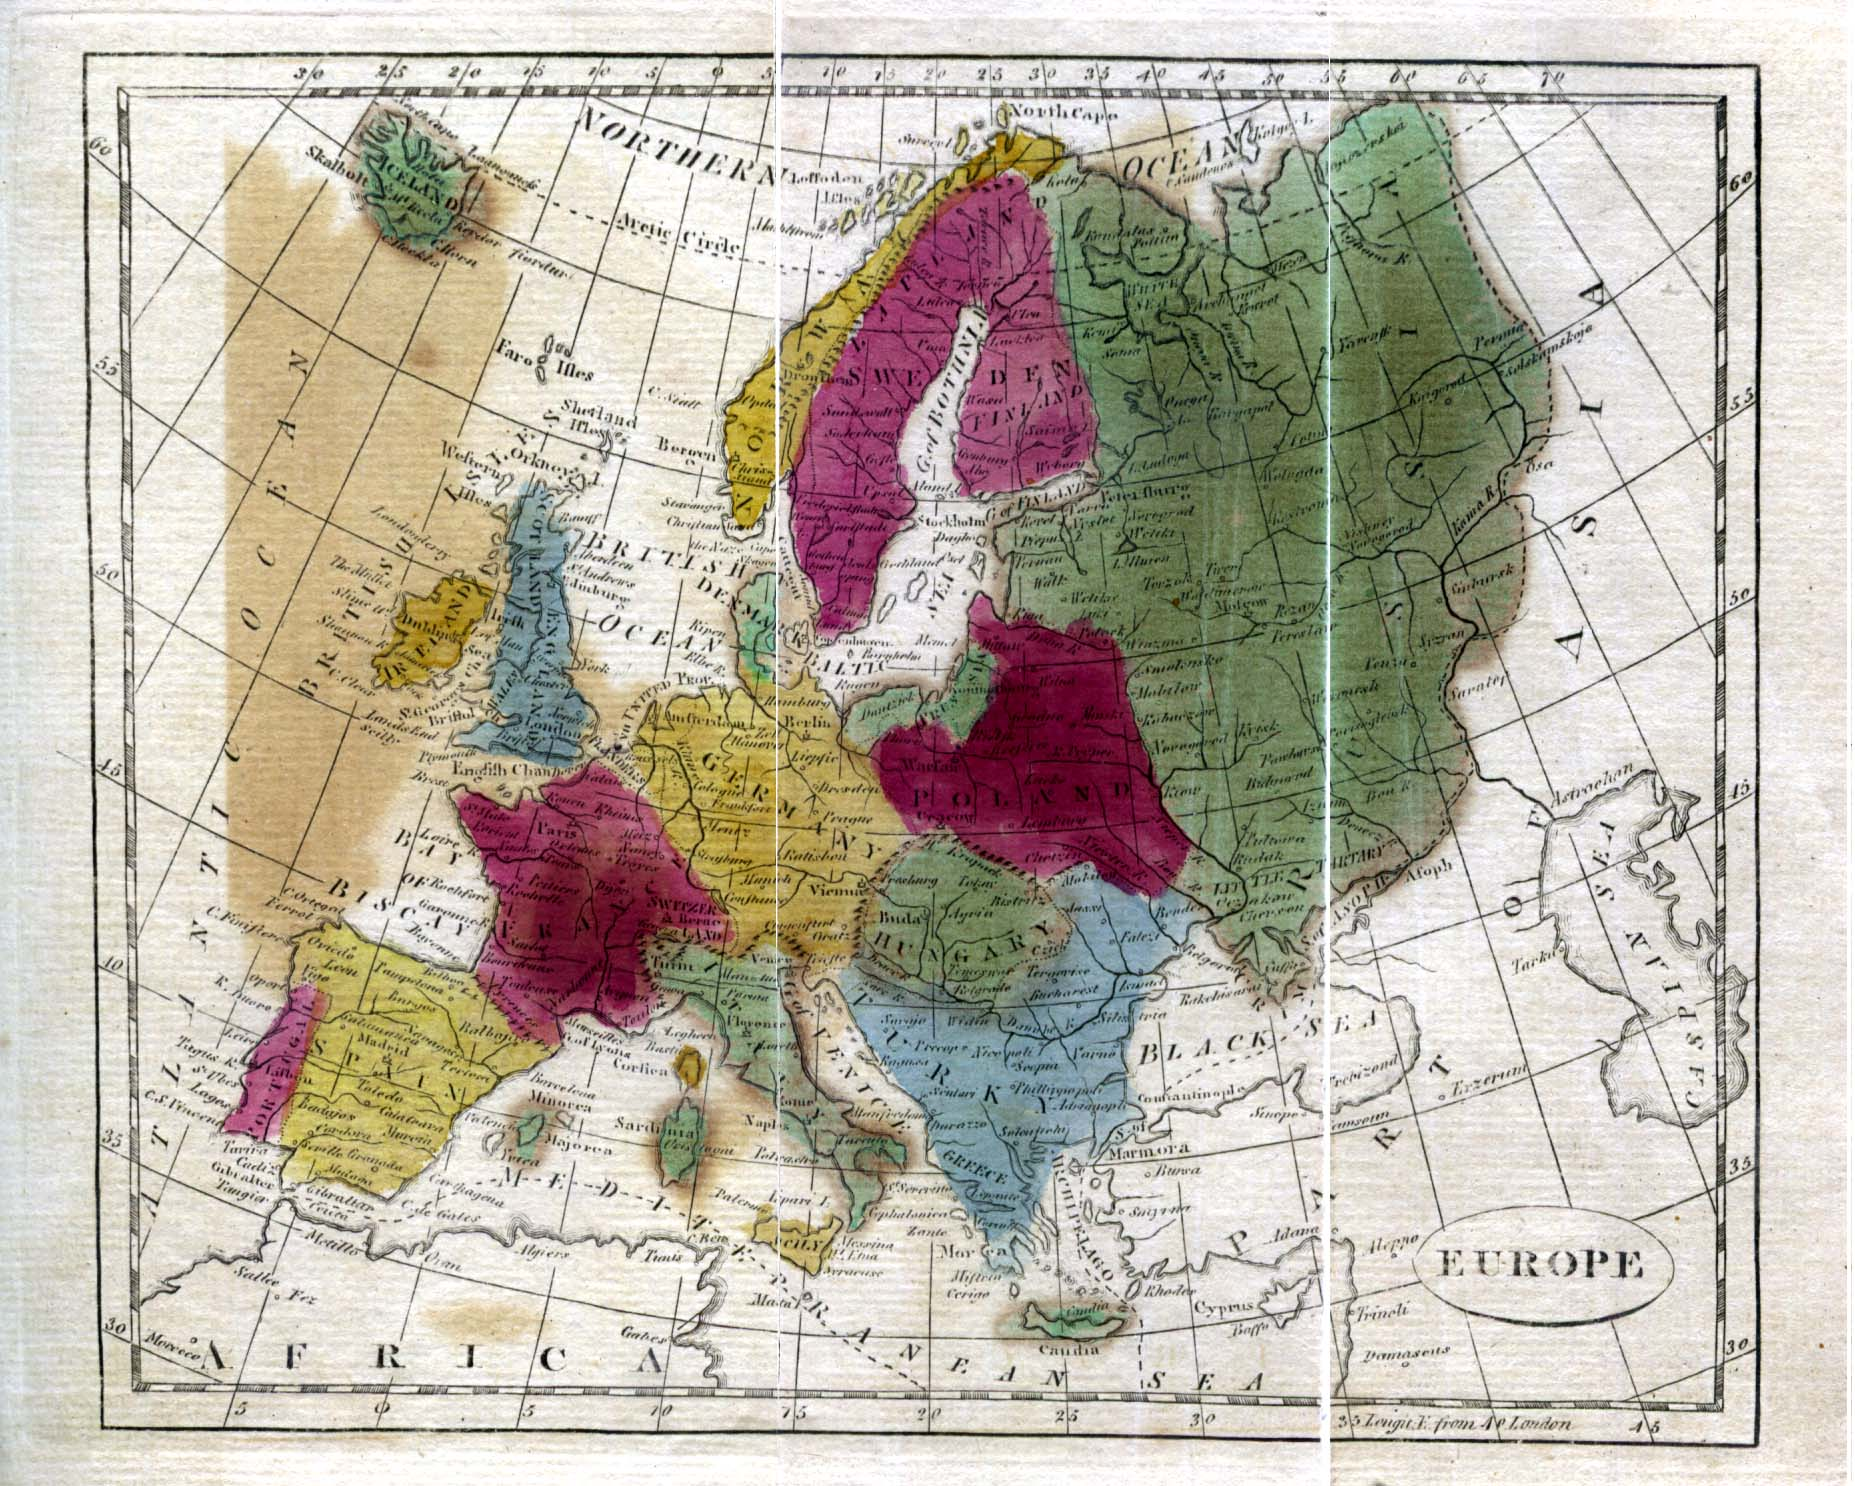 Europe in 1808